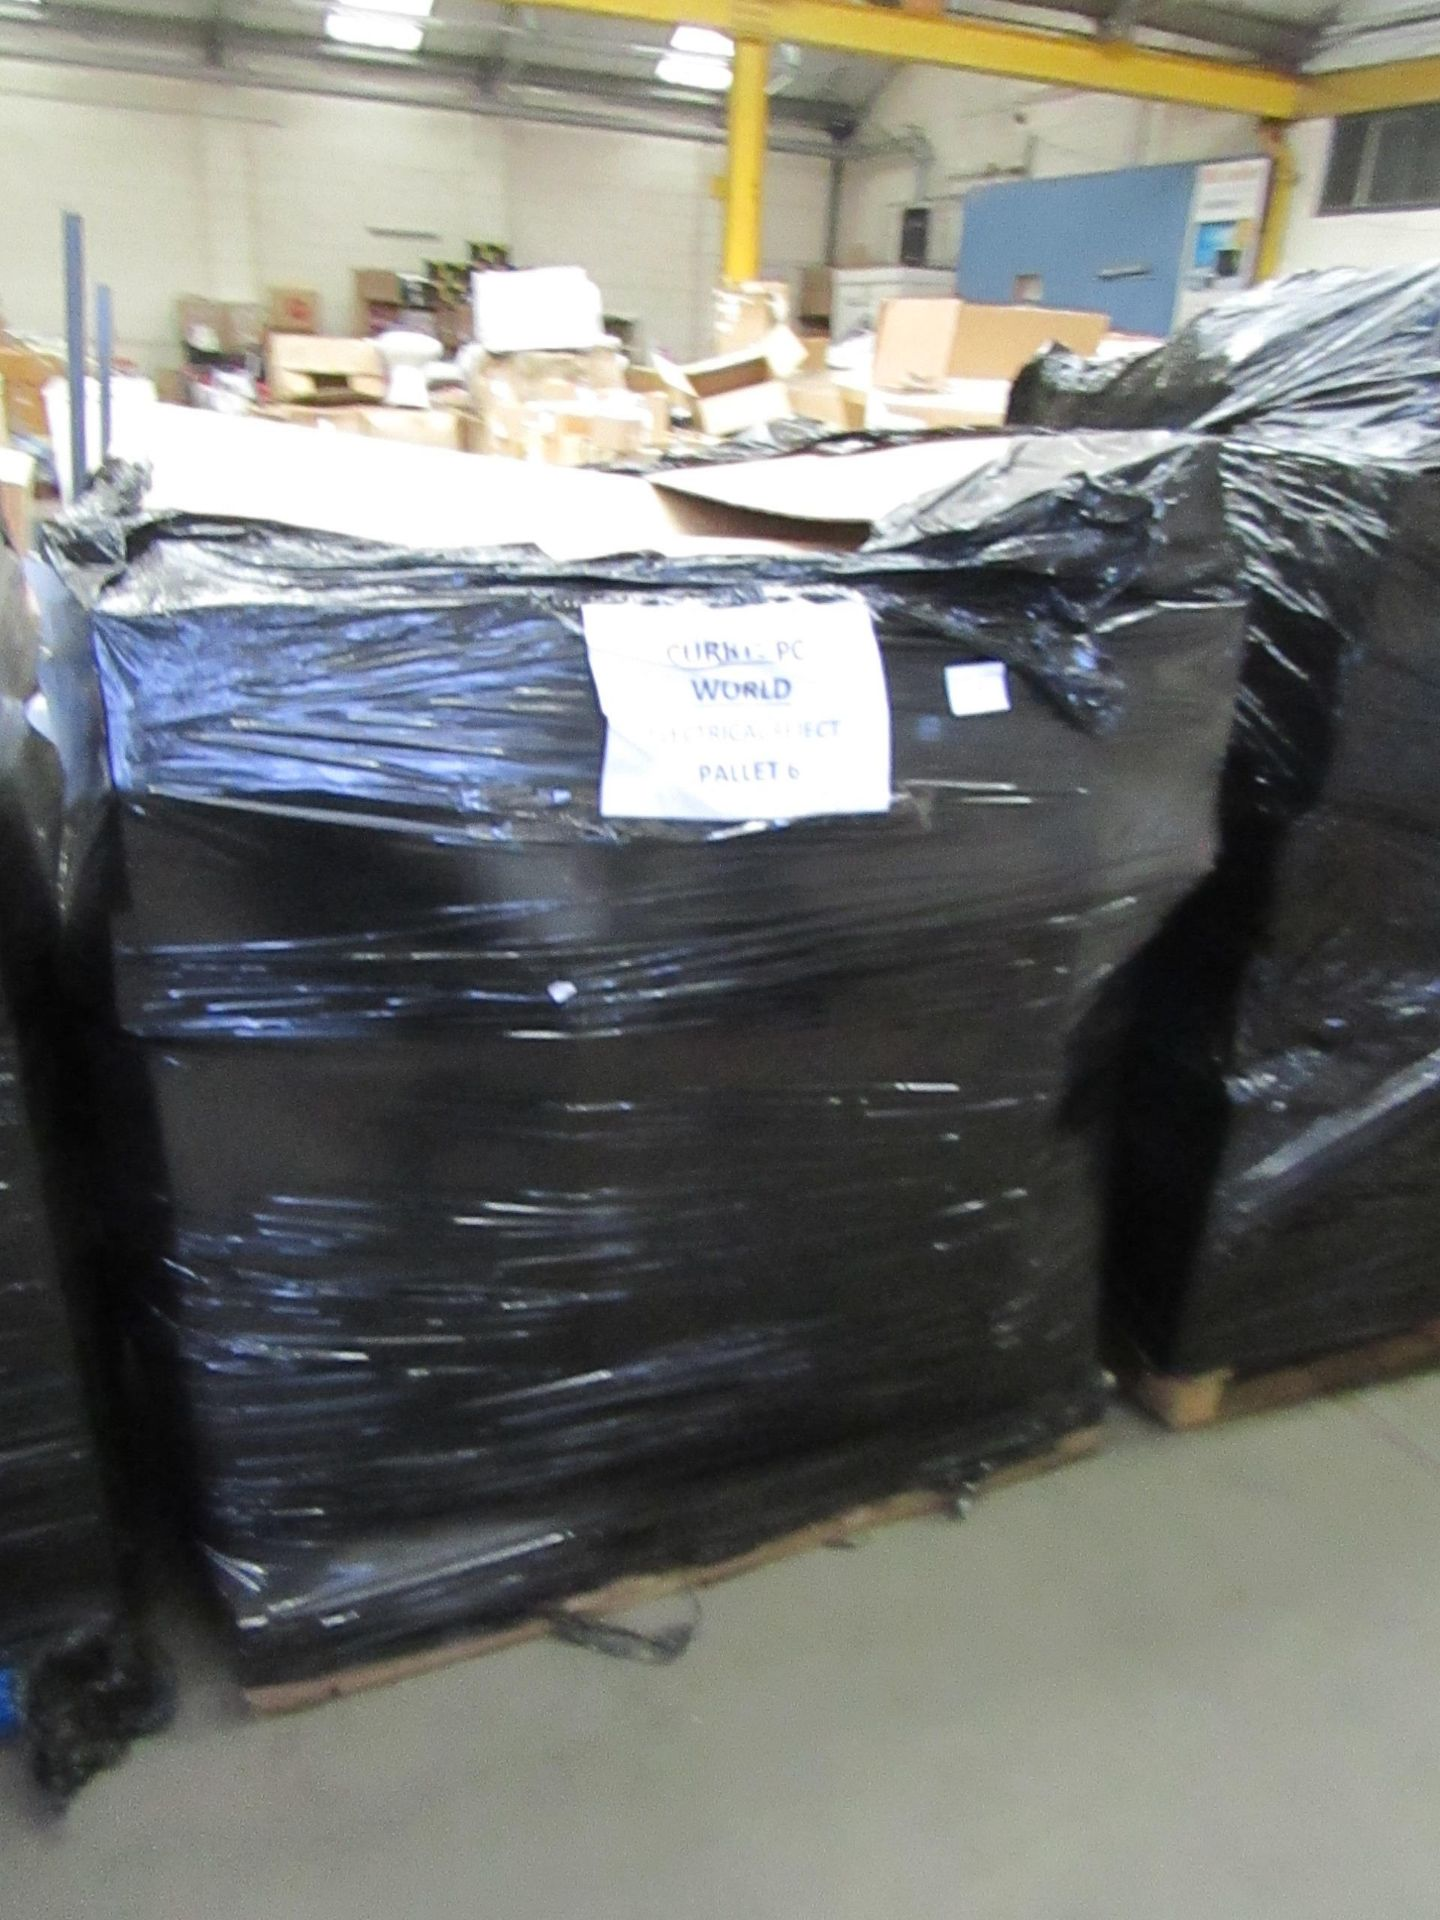   1X   PALLET OF UNMANIFESTED ELECTRICAL ITEMS, ALL RAW CUSTOMER RETURNS SOME MAY BE LOOSE OR IN NON